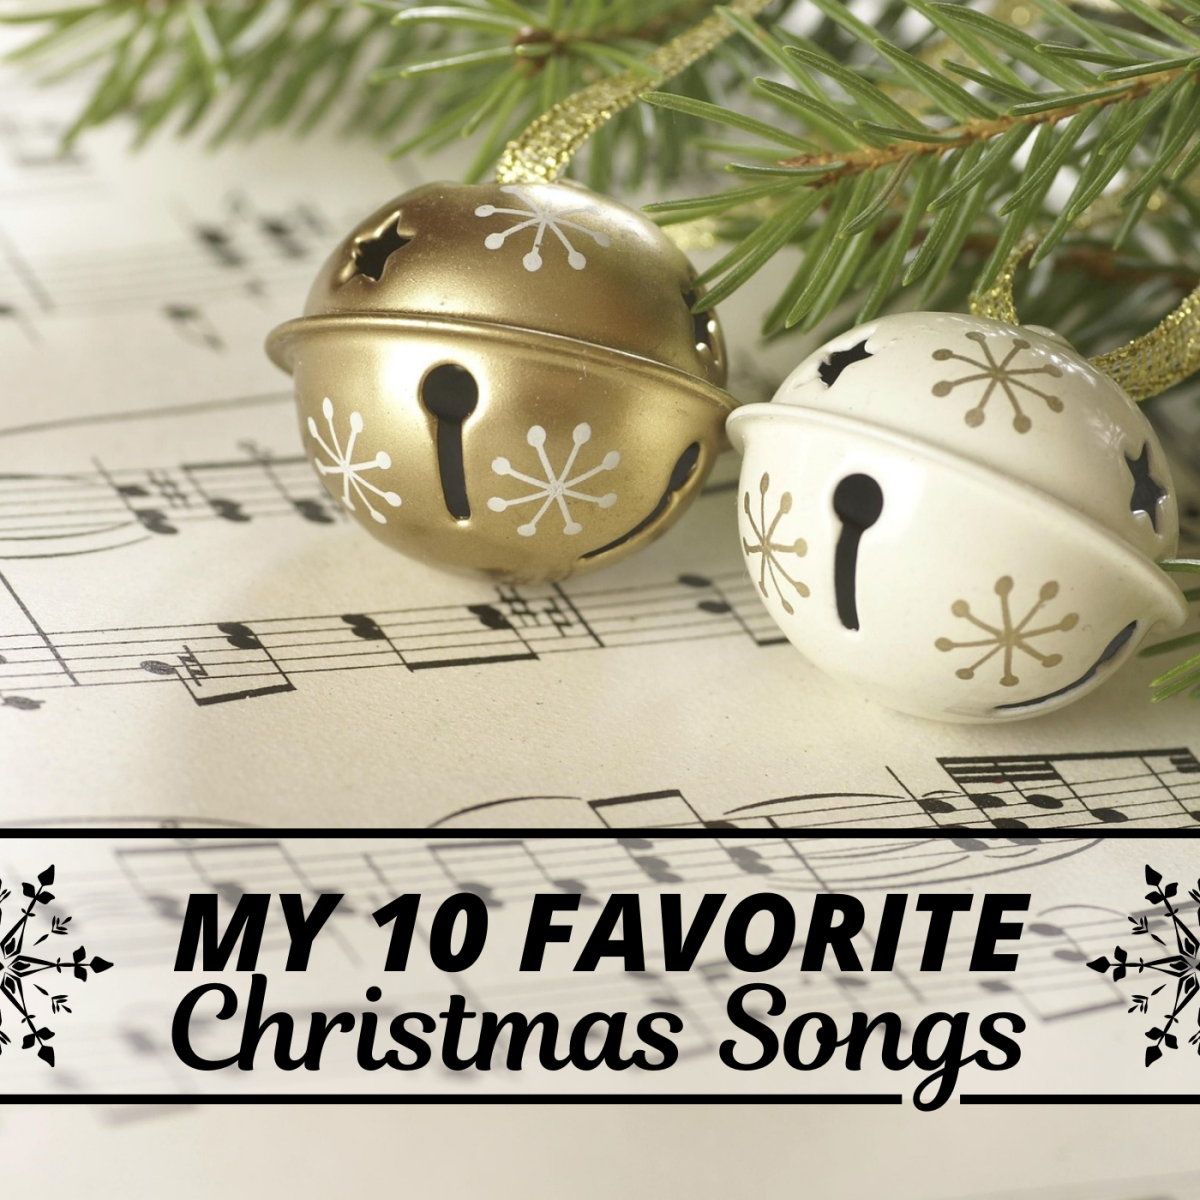 My Top 10 Favorite Christmas Songs and Where They Came From